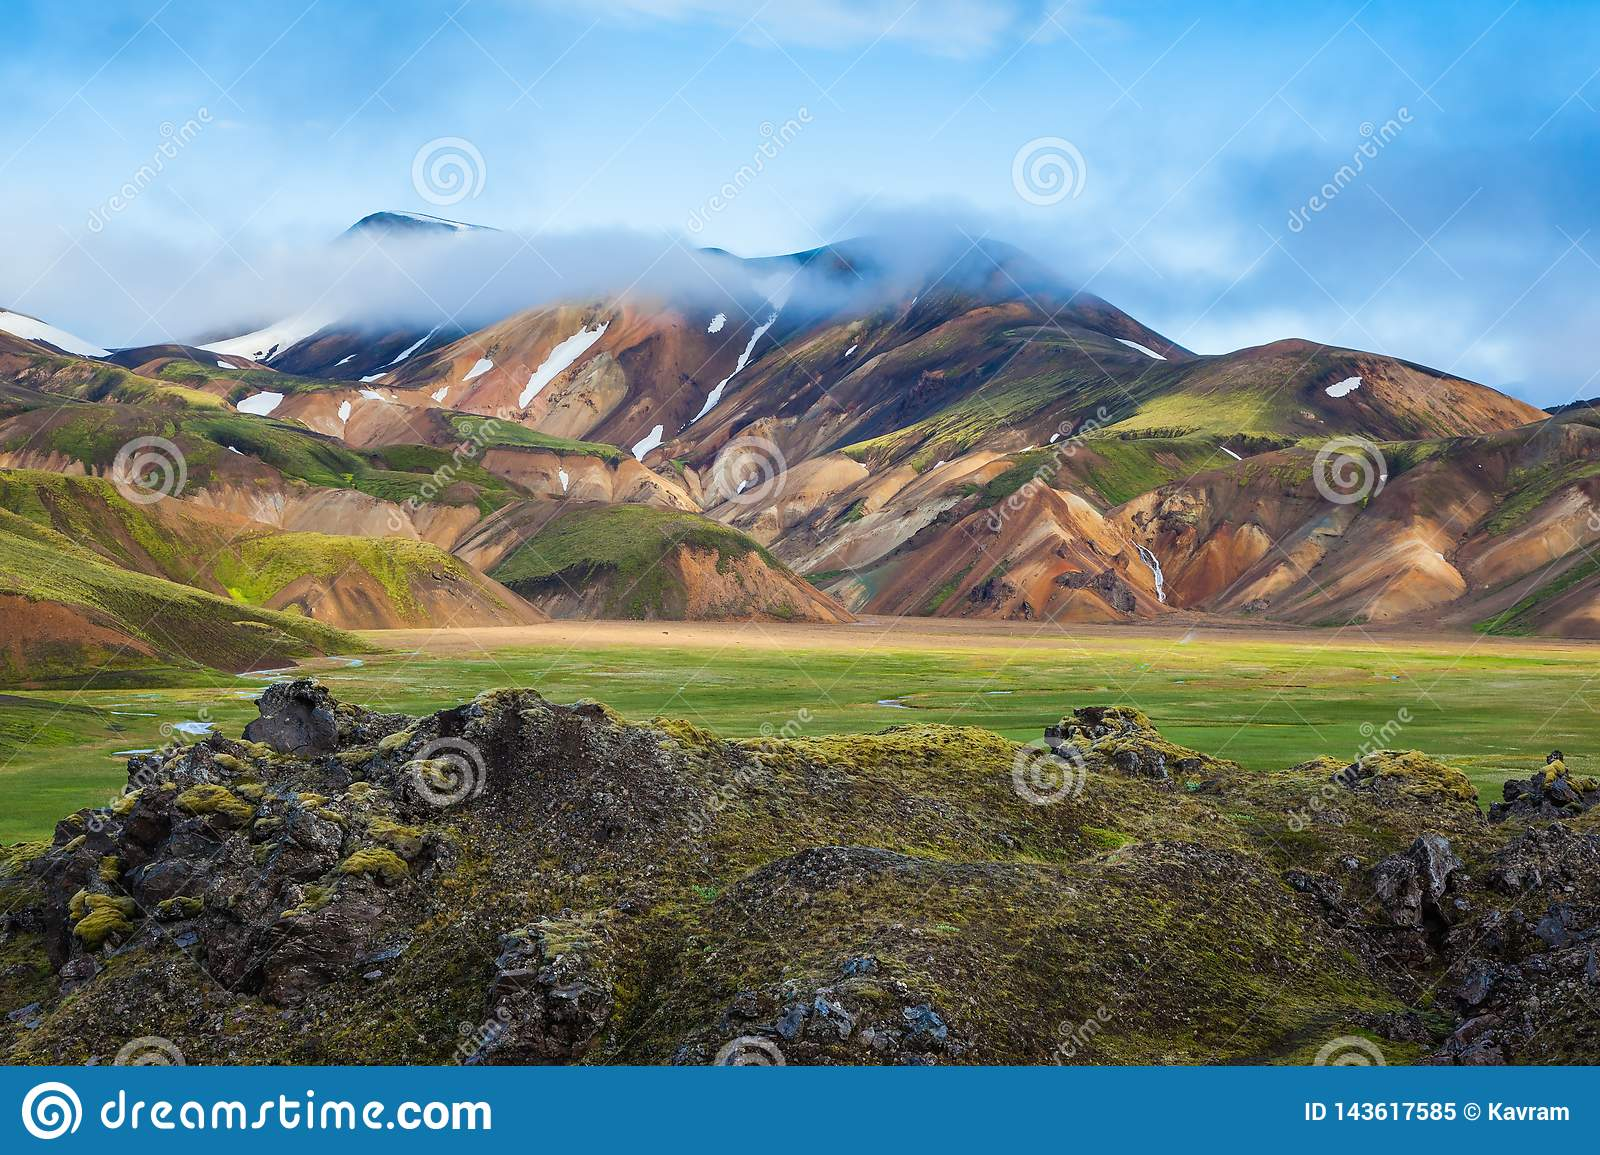 Fog lies in the hollows of colorful mountains